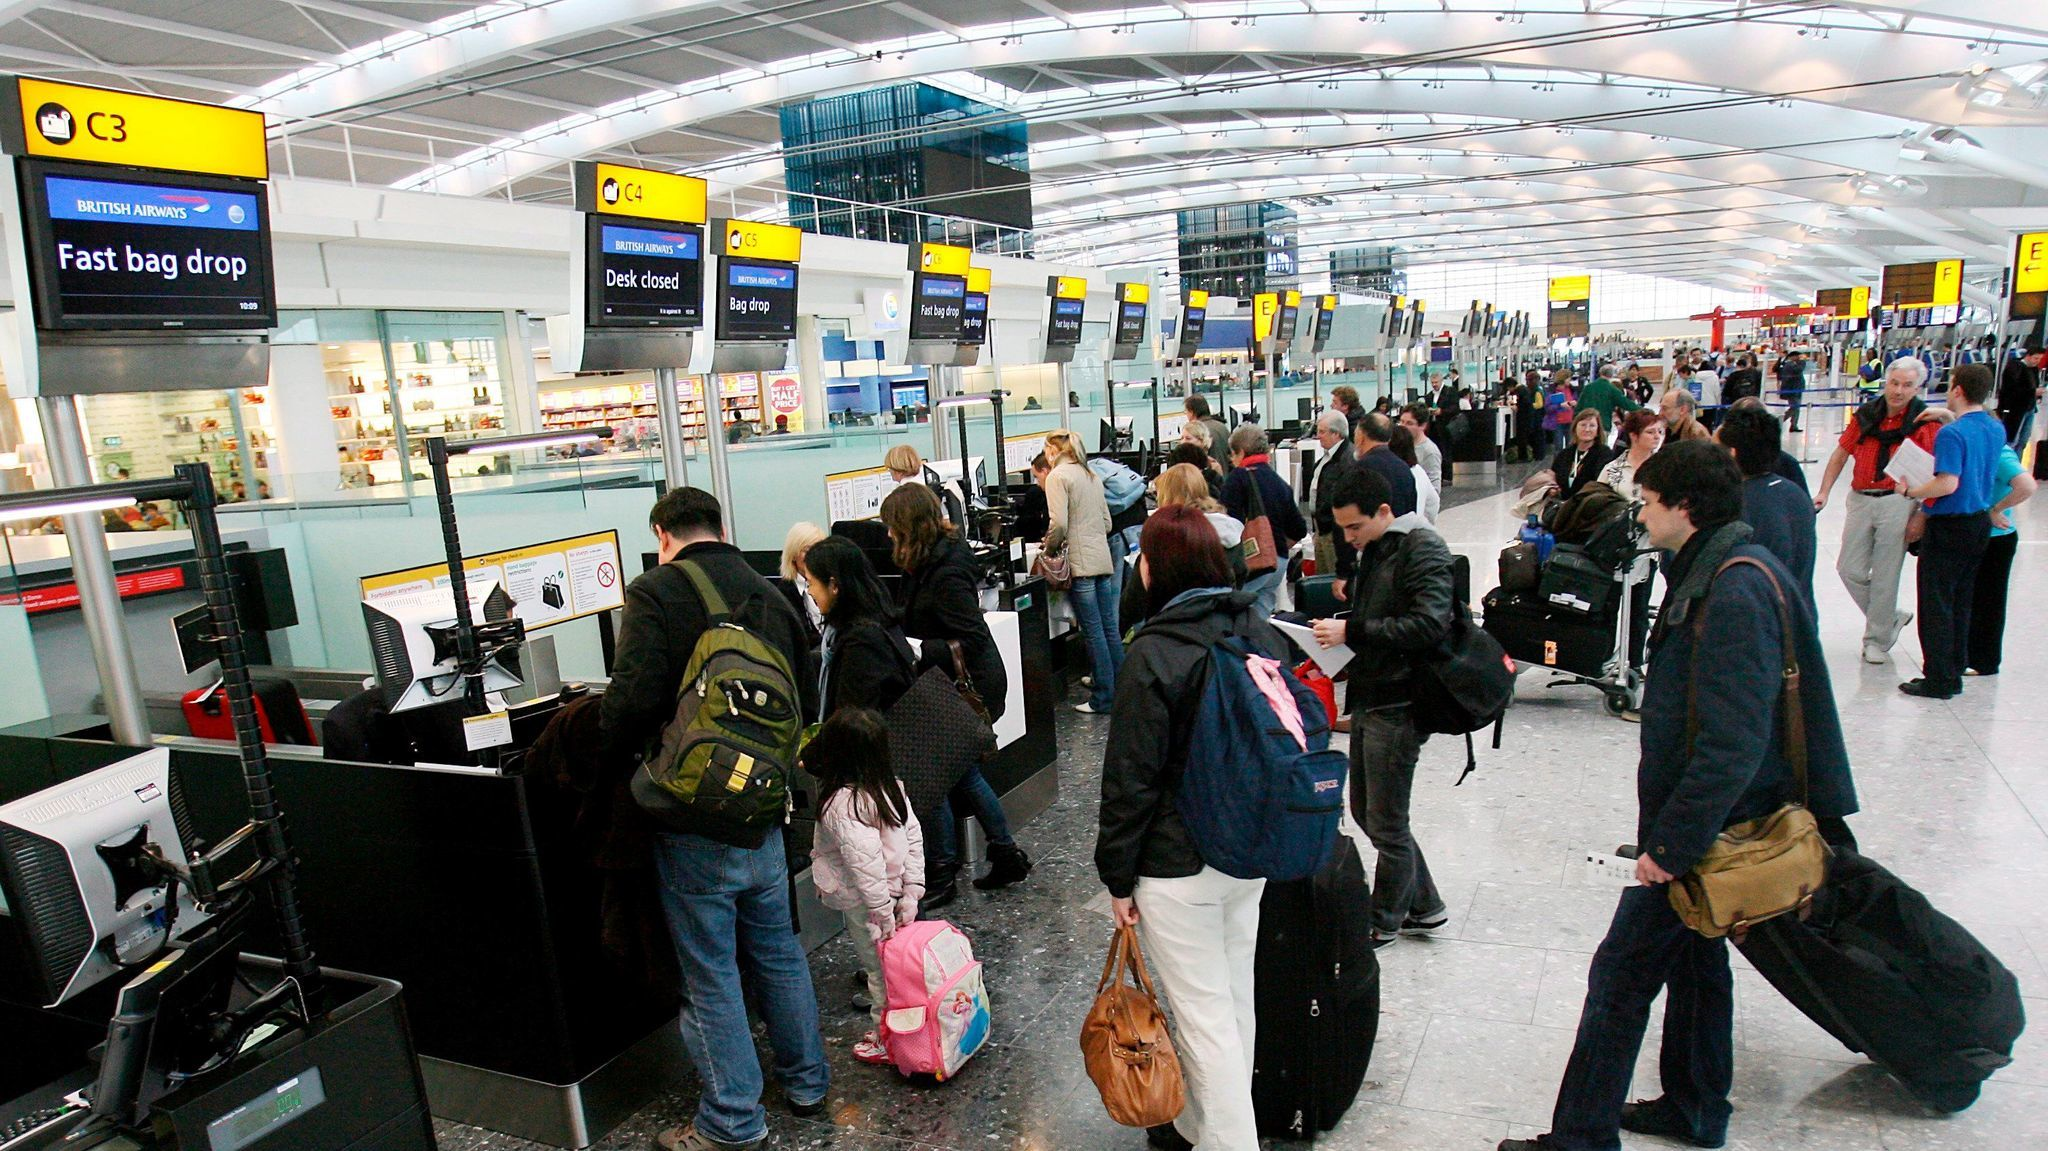 British Airways customers check in at Heathrow Airport's Terminal 5 in London. A service called Heathrow VIP inspired the private terminal at Los Angeles International Airport.